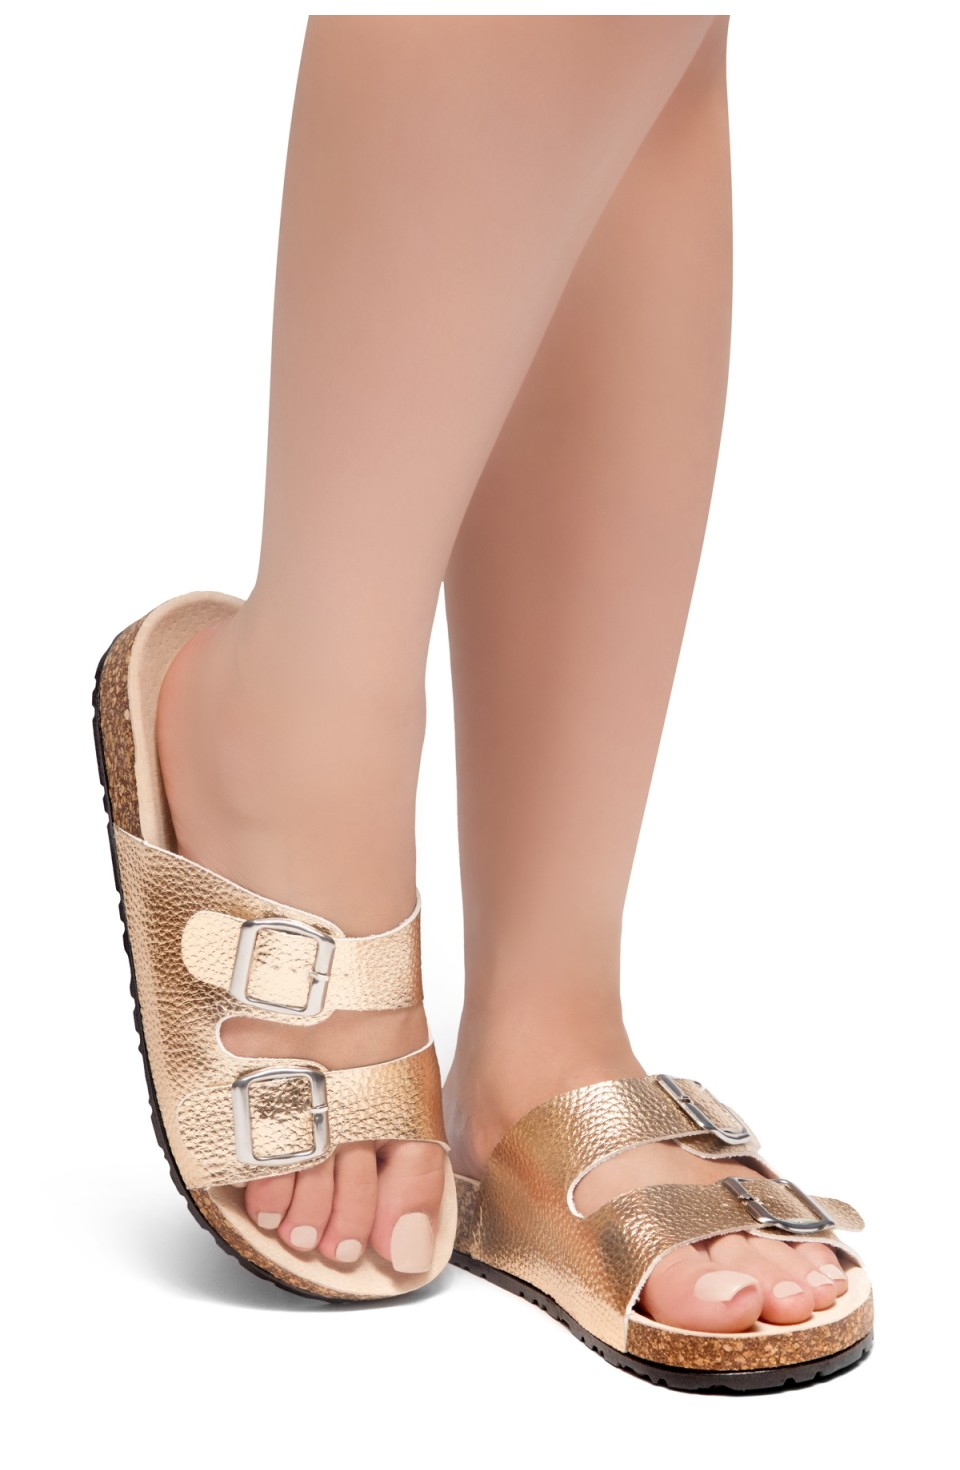 HerStyle Viviana- Double Buckled Cork Foot Bed Sandal (RoseGold)